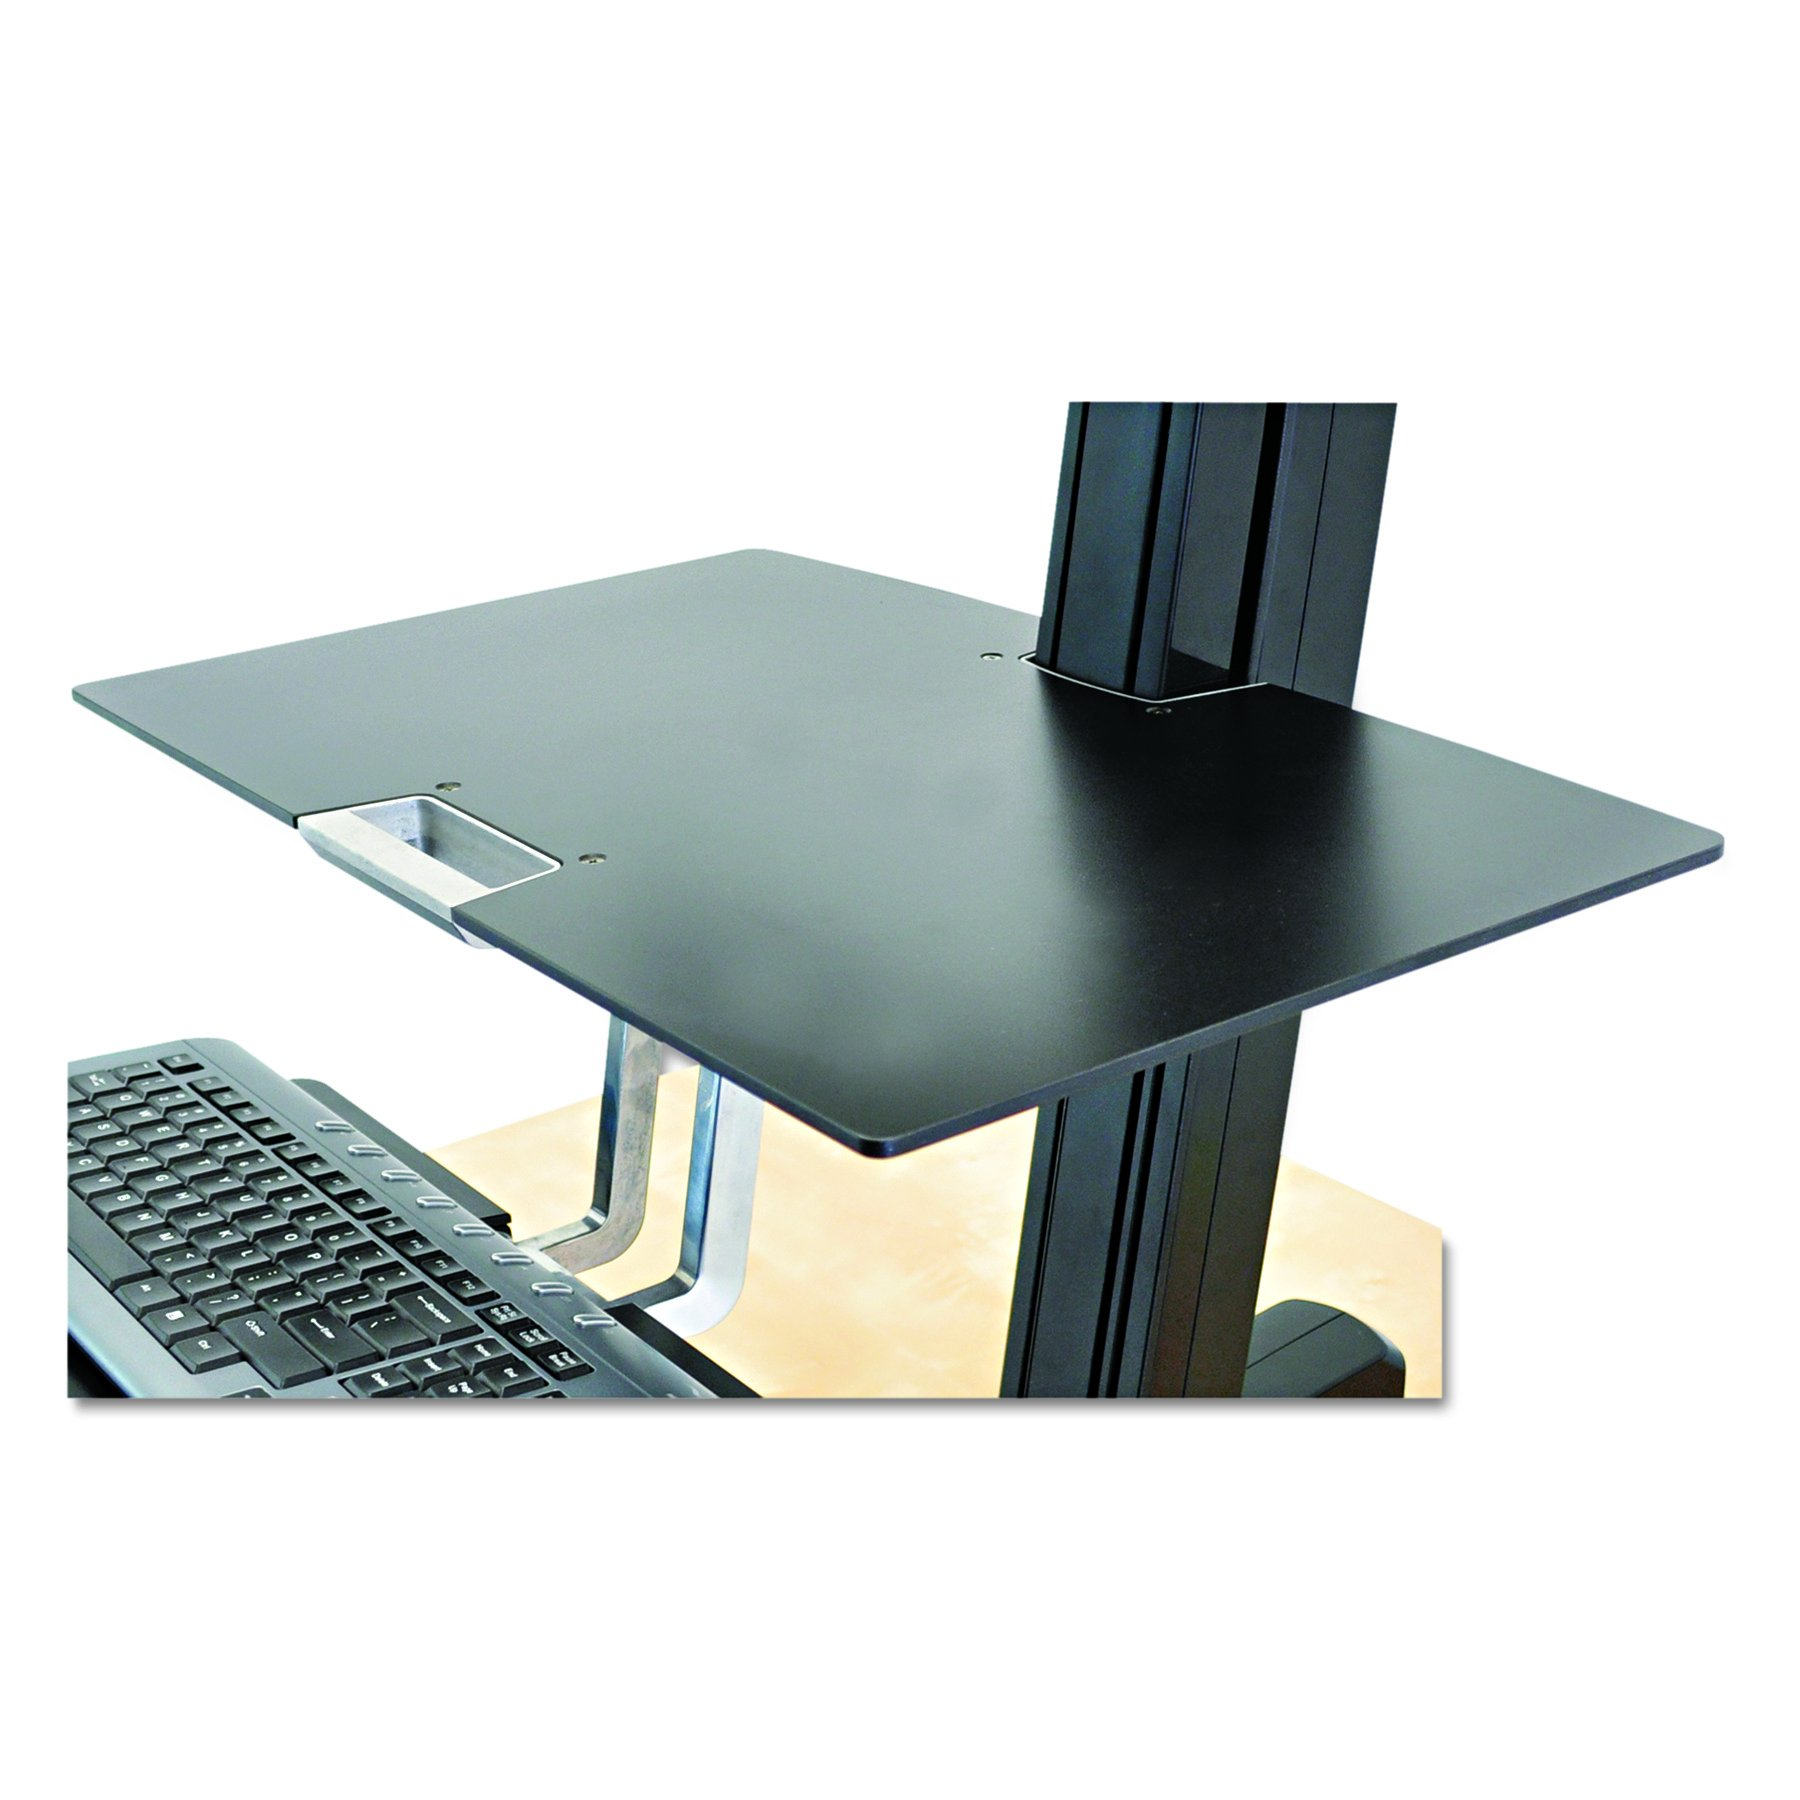 Ergotron Worksurface for WorkFit-S (97-581-019) by Ergotron